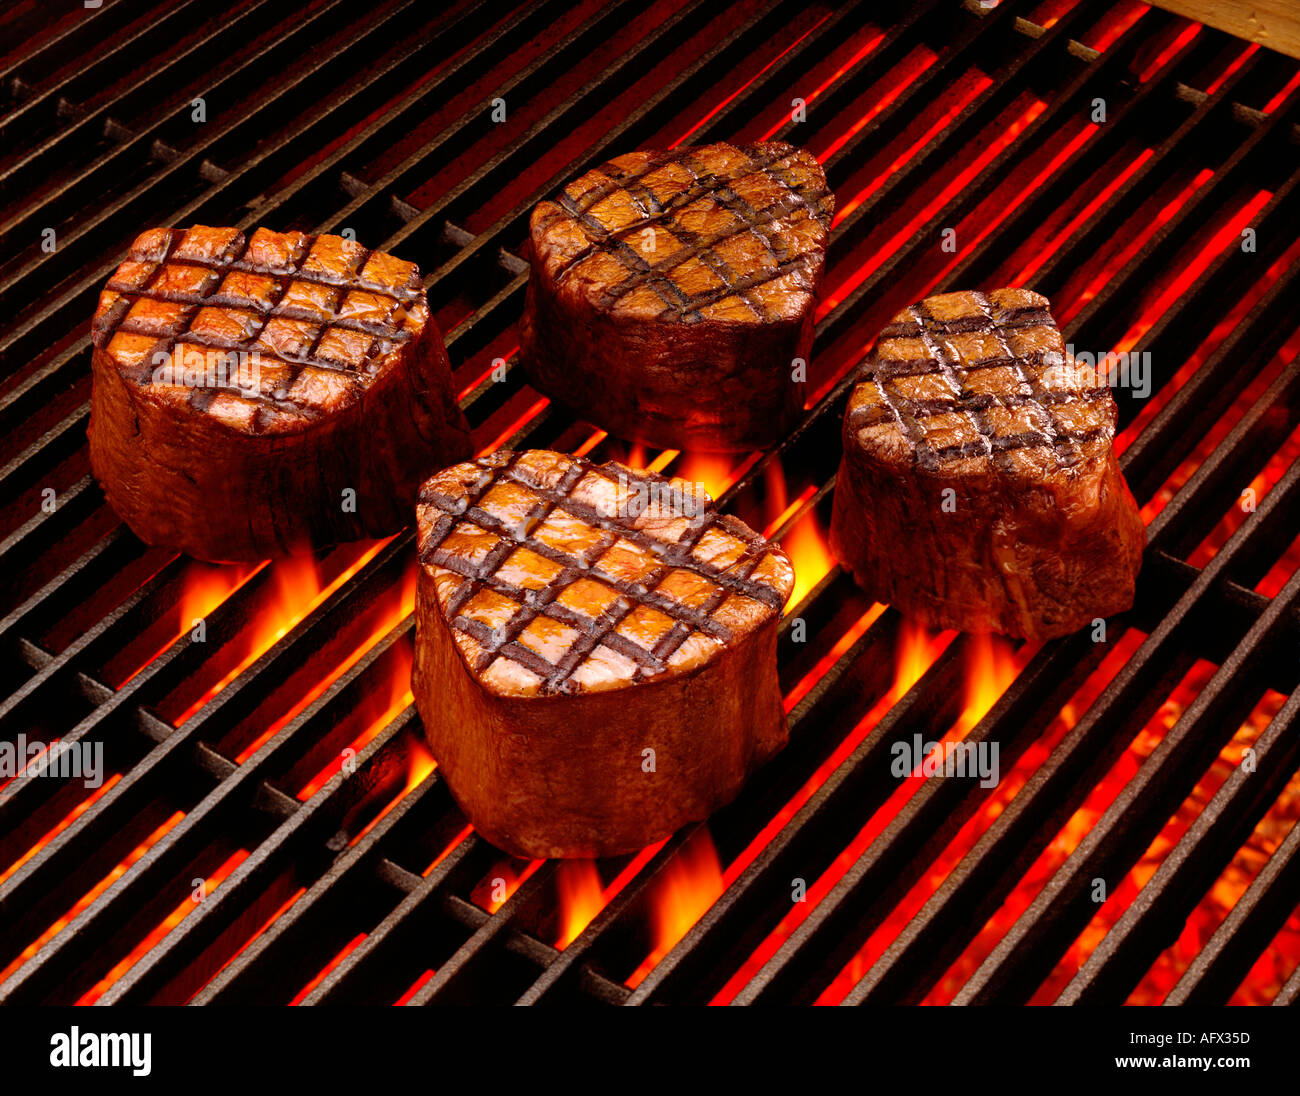 how to cook filet mignon on gas grill